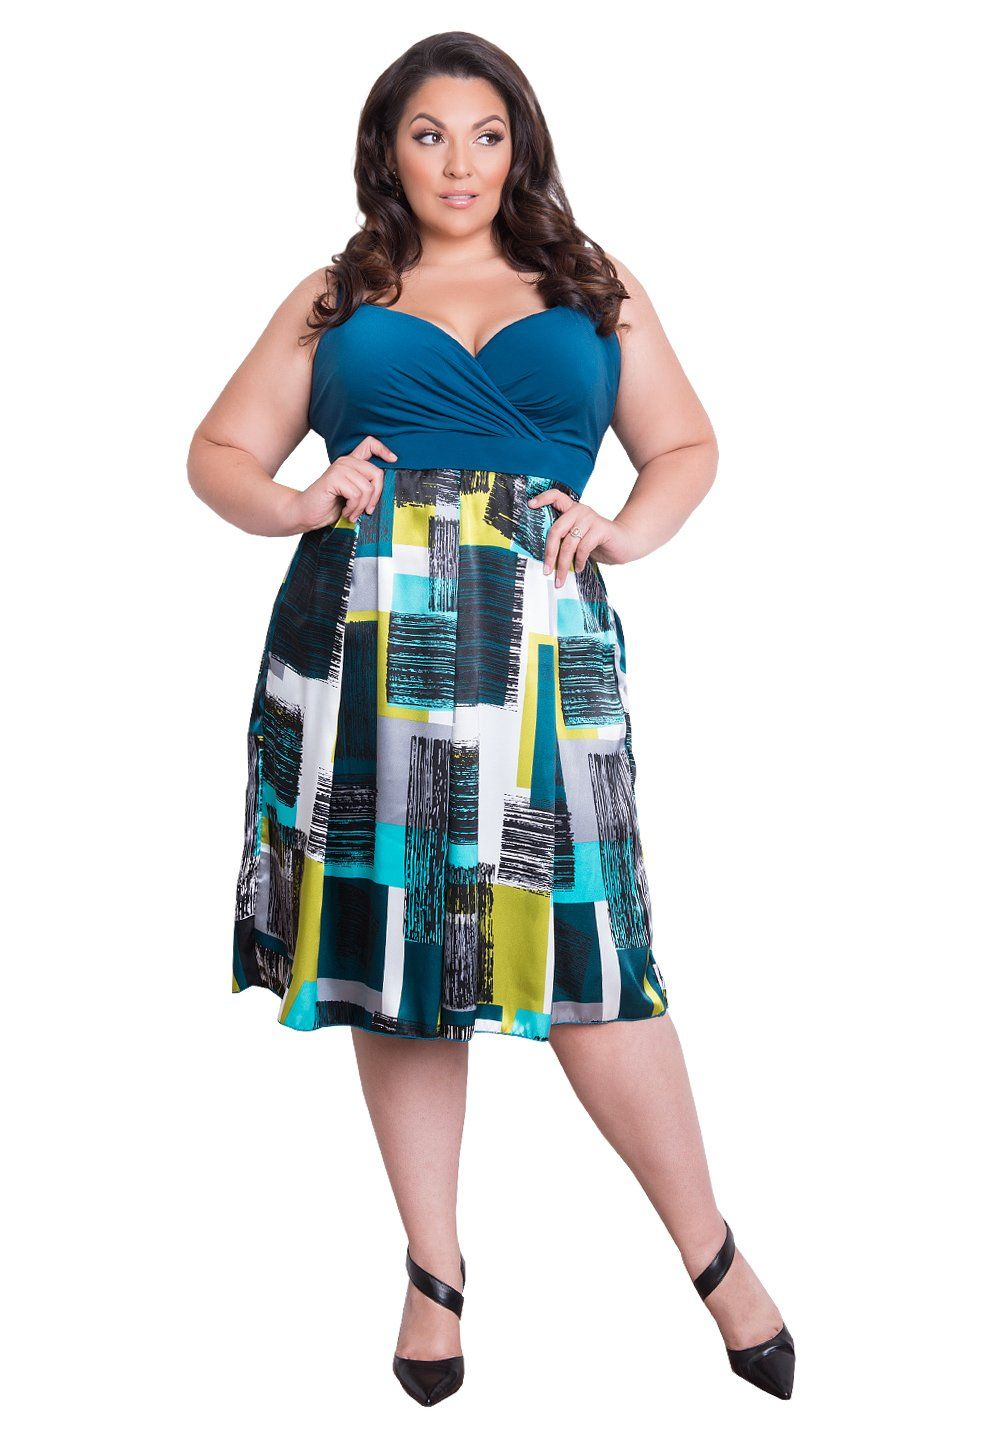 86be1f77bfc IGIGI Womens Plus Size Sleeveless Empire Waistband Cocktail Dress -  Bennetta Polished 22 24.